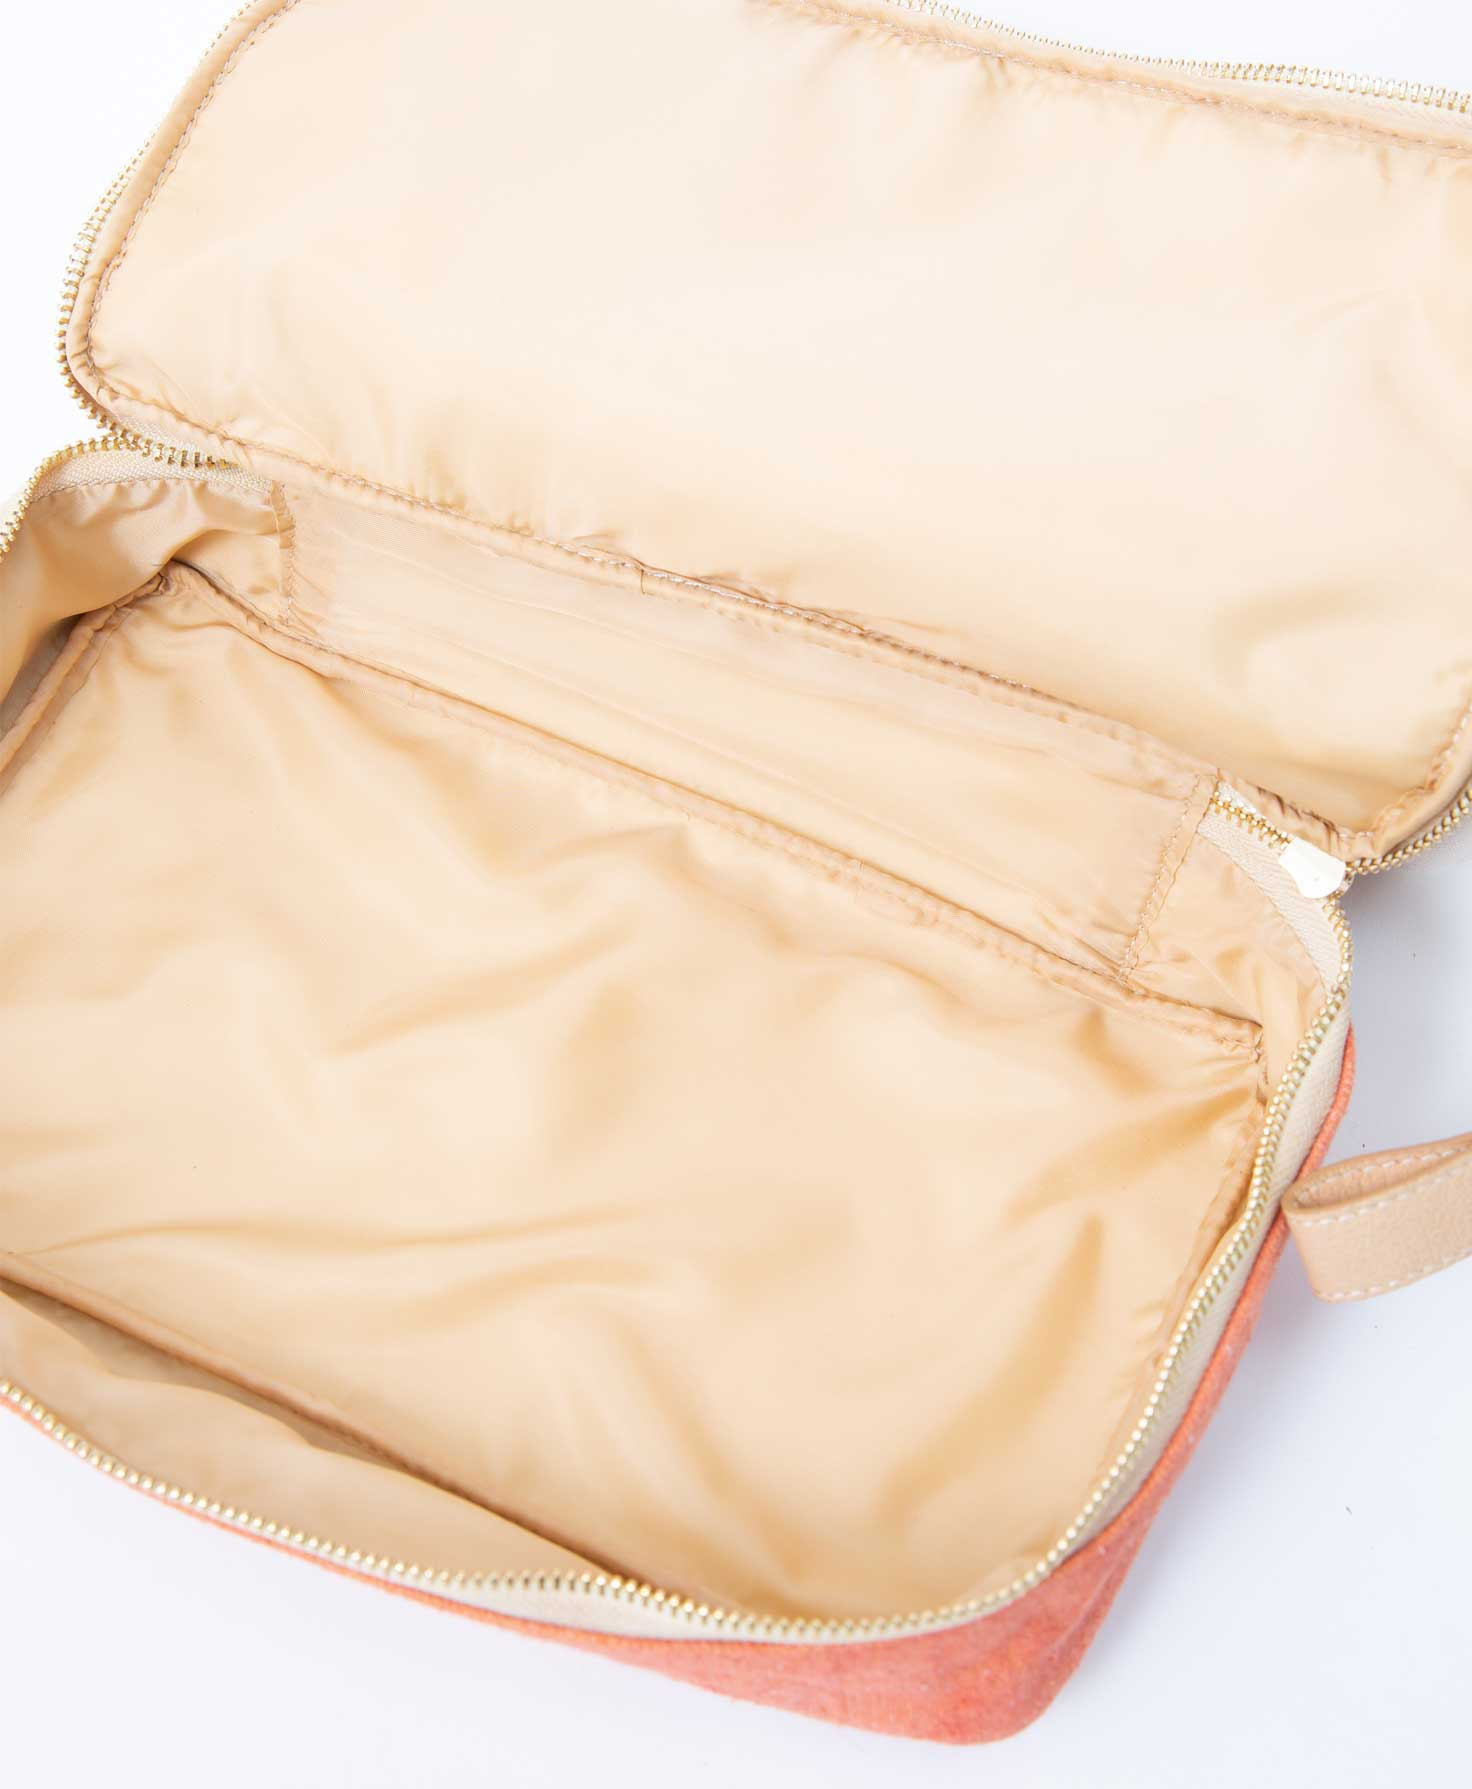 The top compartment of the Voyage Dopp Kit is unzipped, showing the interior of the compartment. It is lined with a smooth beige polyester lining that can easily be wiped clean. There are two open polyester pockets on the inside of the top compartment.